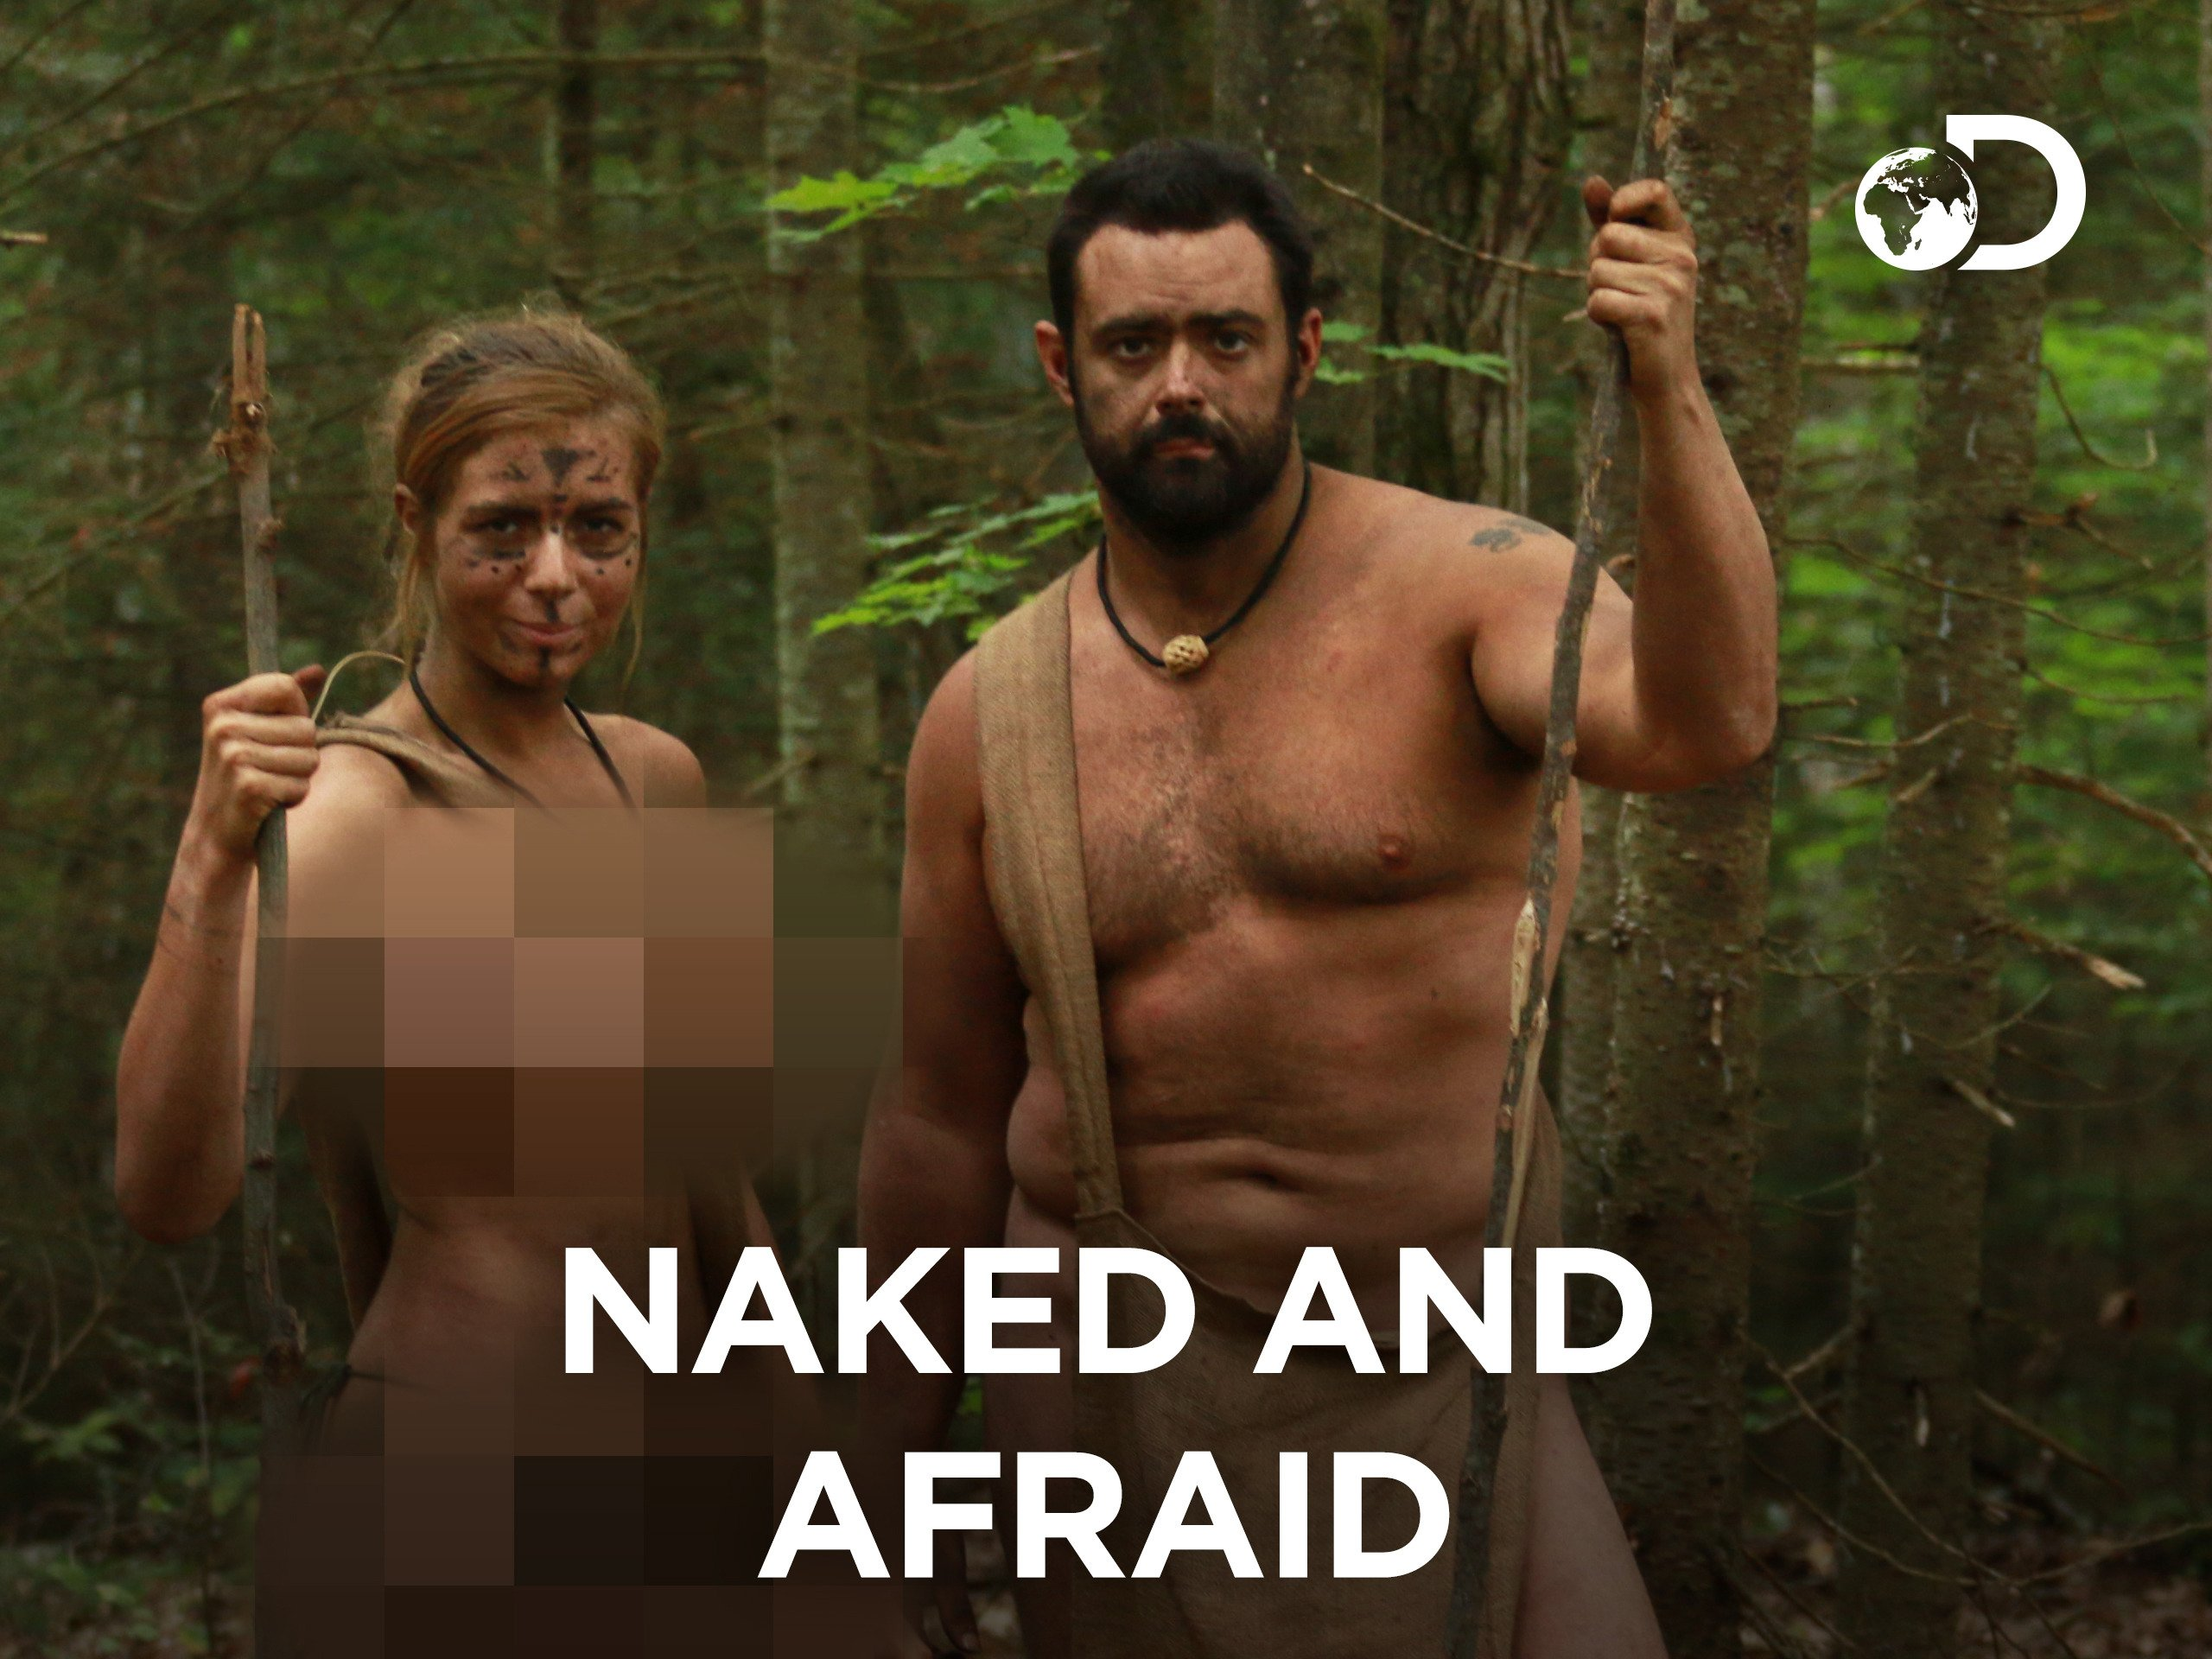 Naked and afraid season 3 frozen images 21